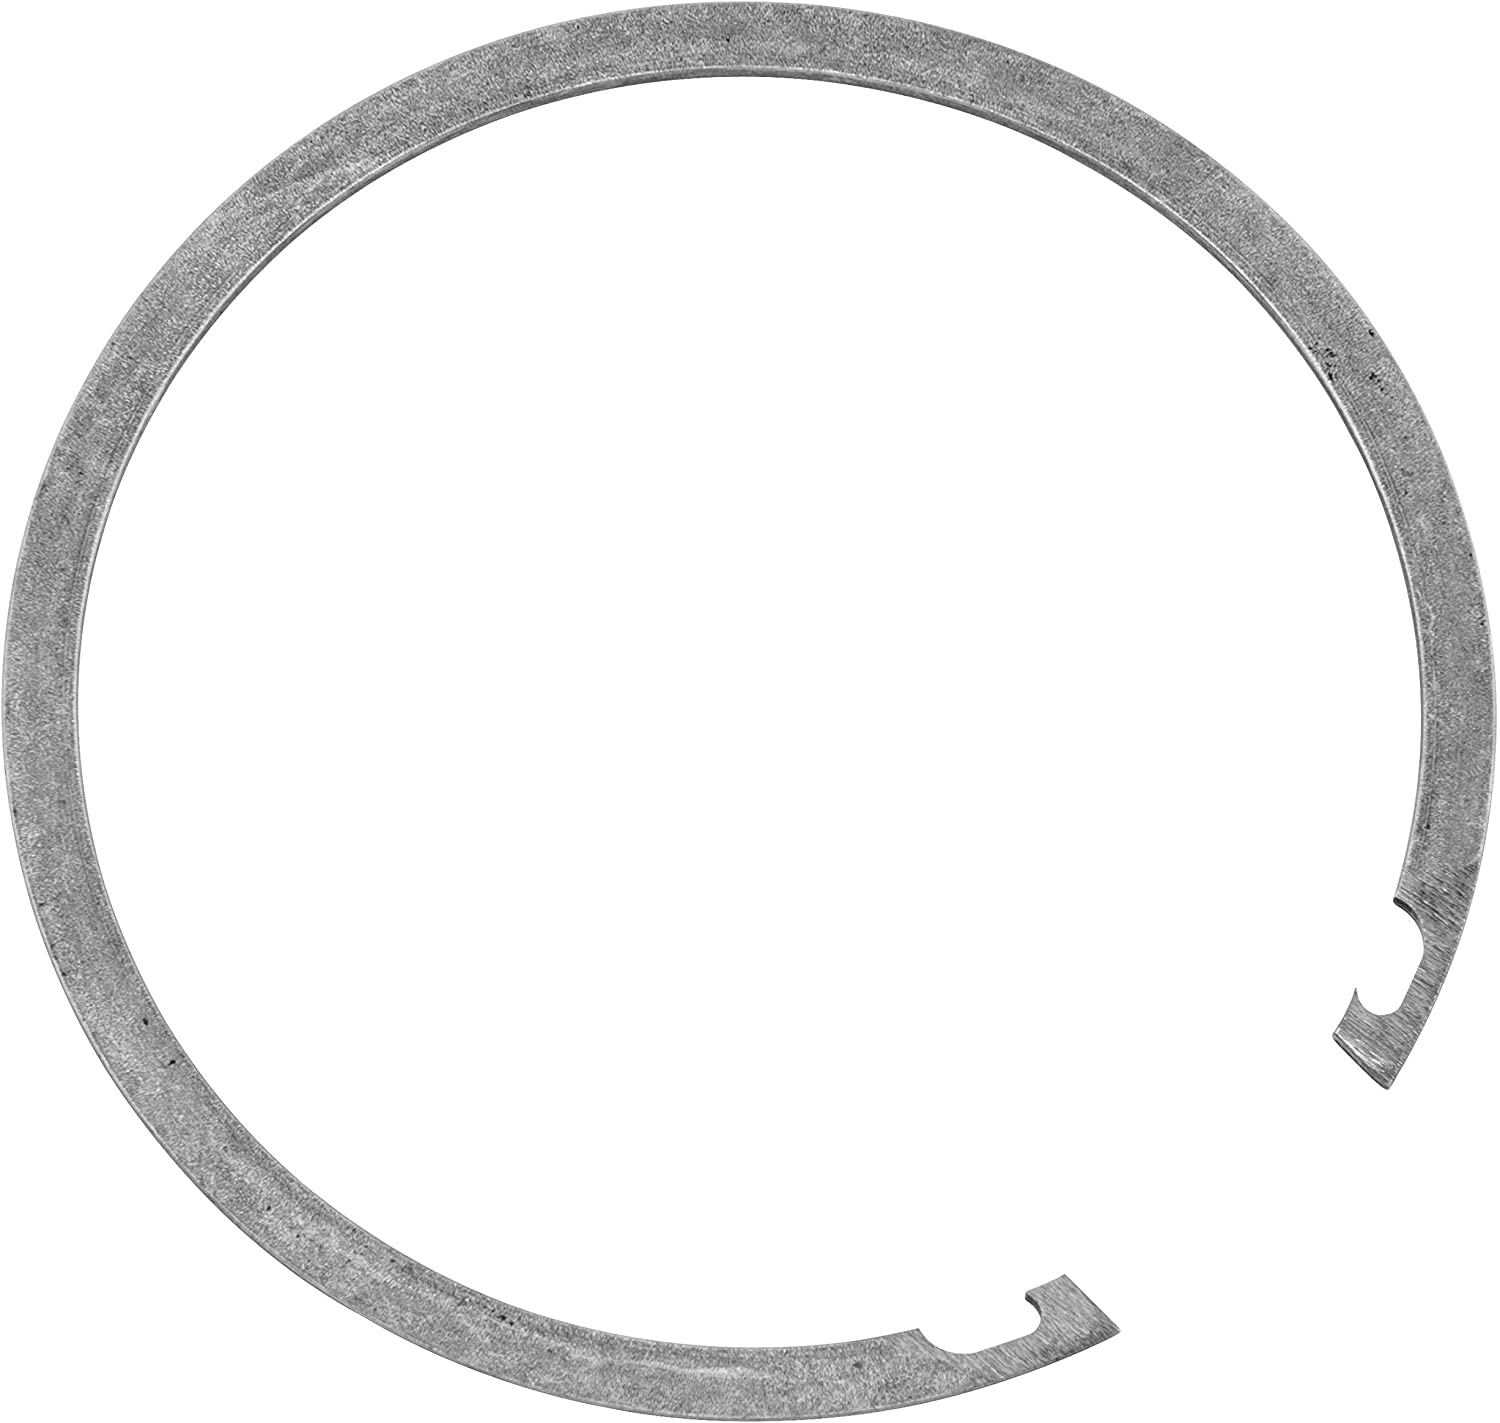 91-15 Xl Clutch Hub Retaining Ring A-37905-90 New Eastern Performance 90-99 Bt